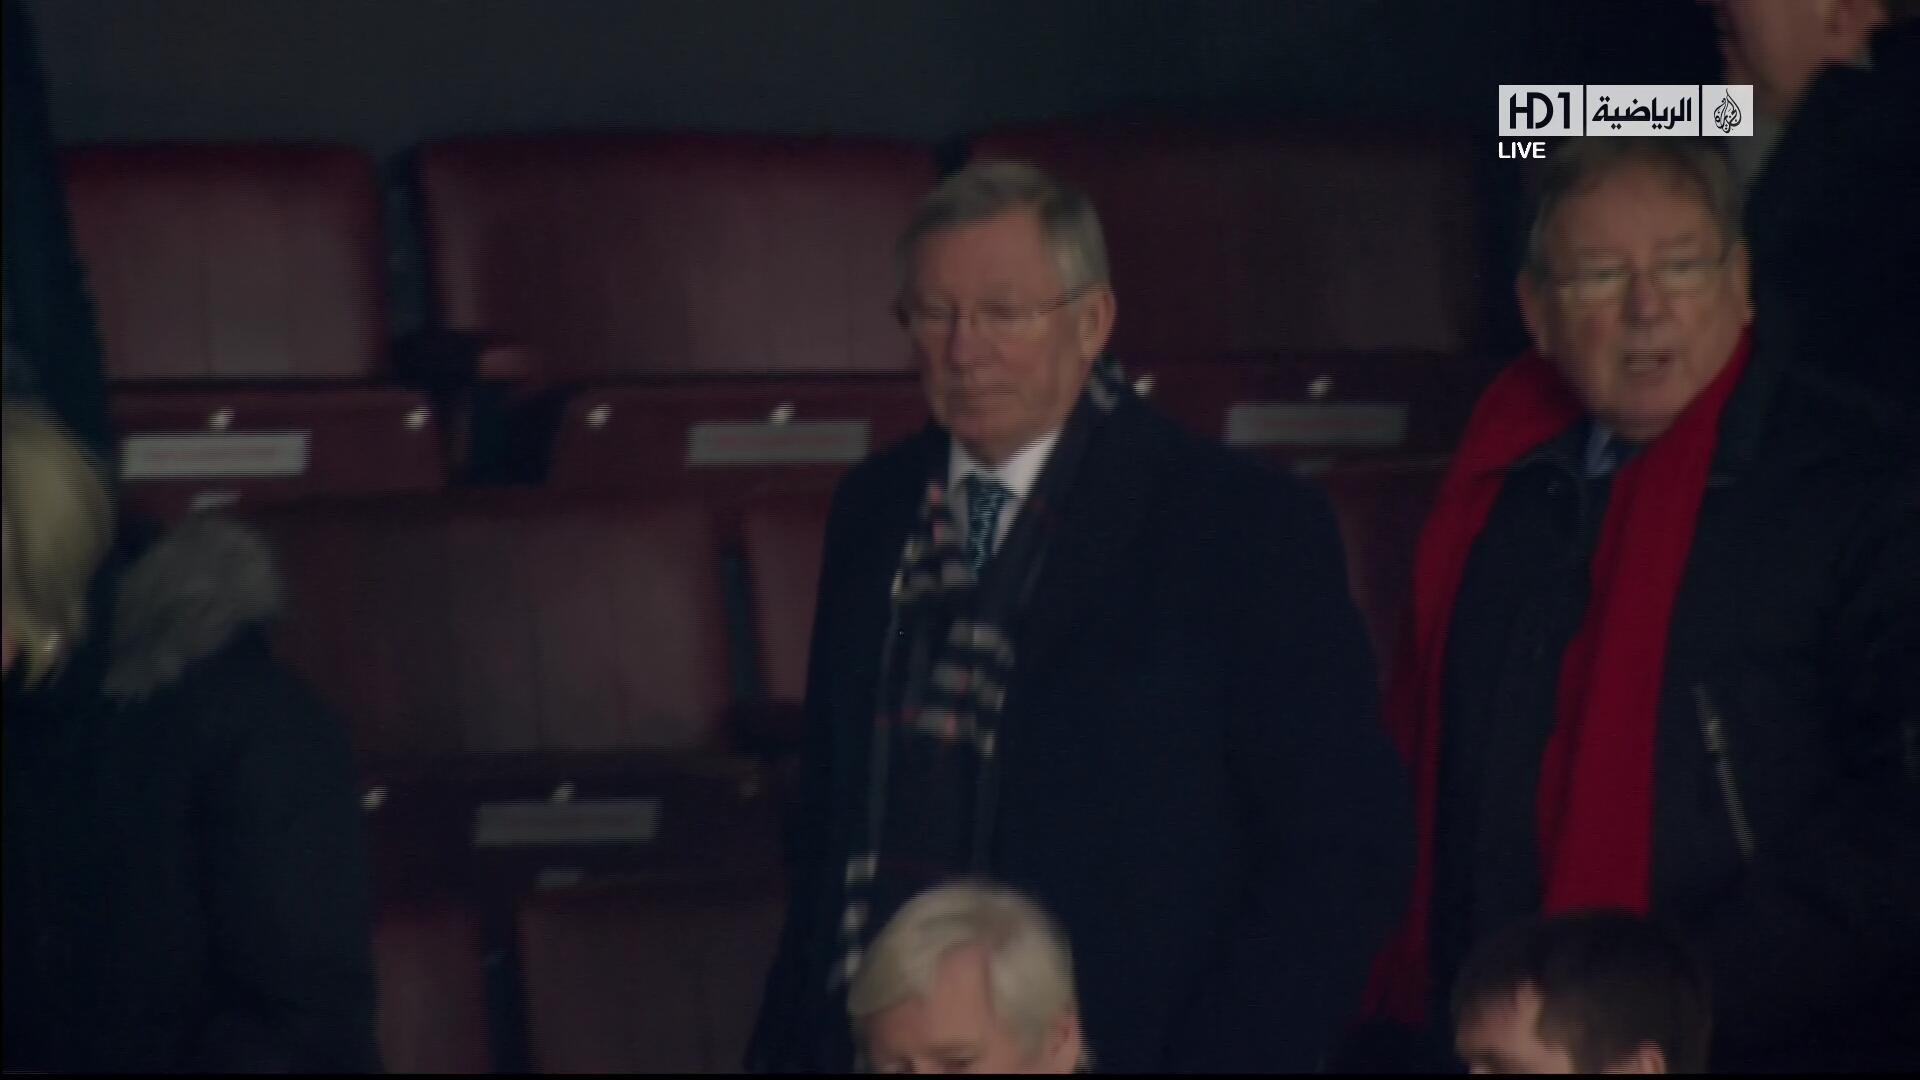 Sir Alex Fergusons face after Manchester United lose at home to Everton